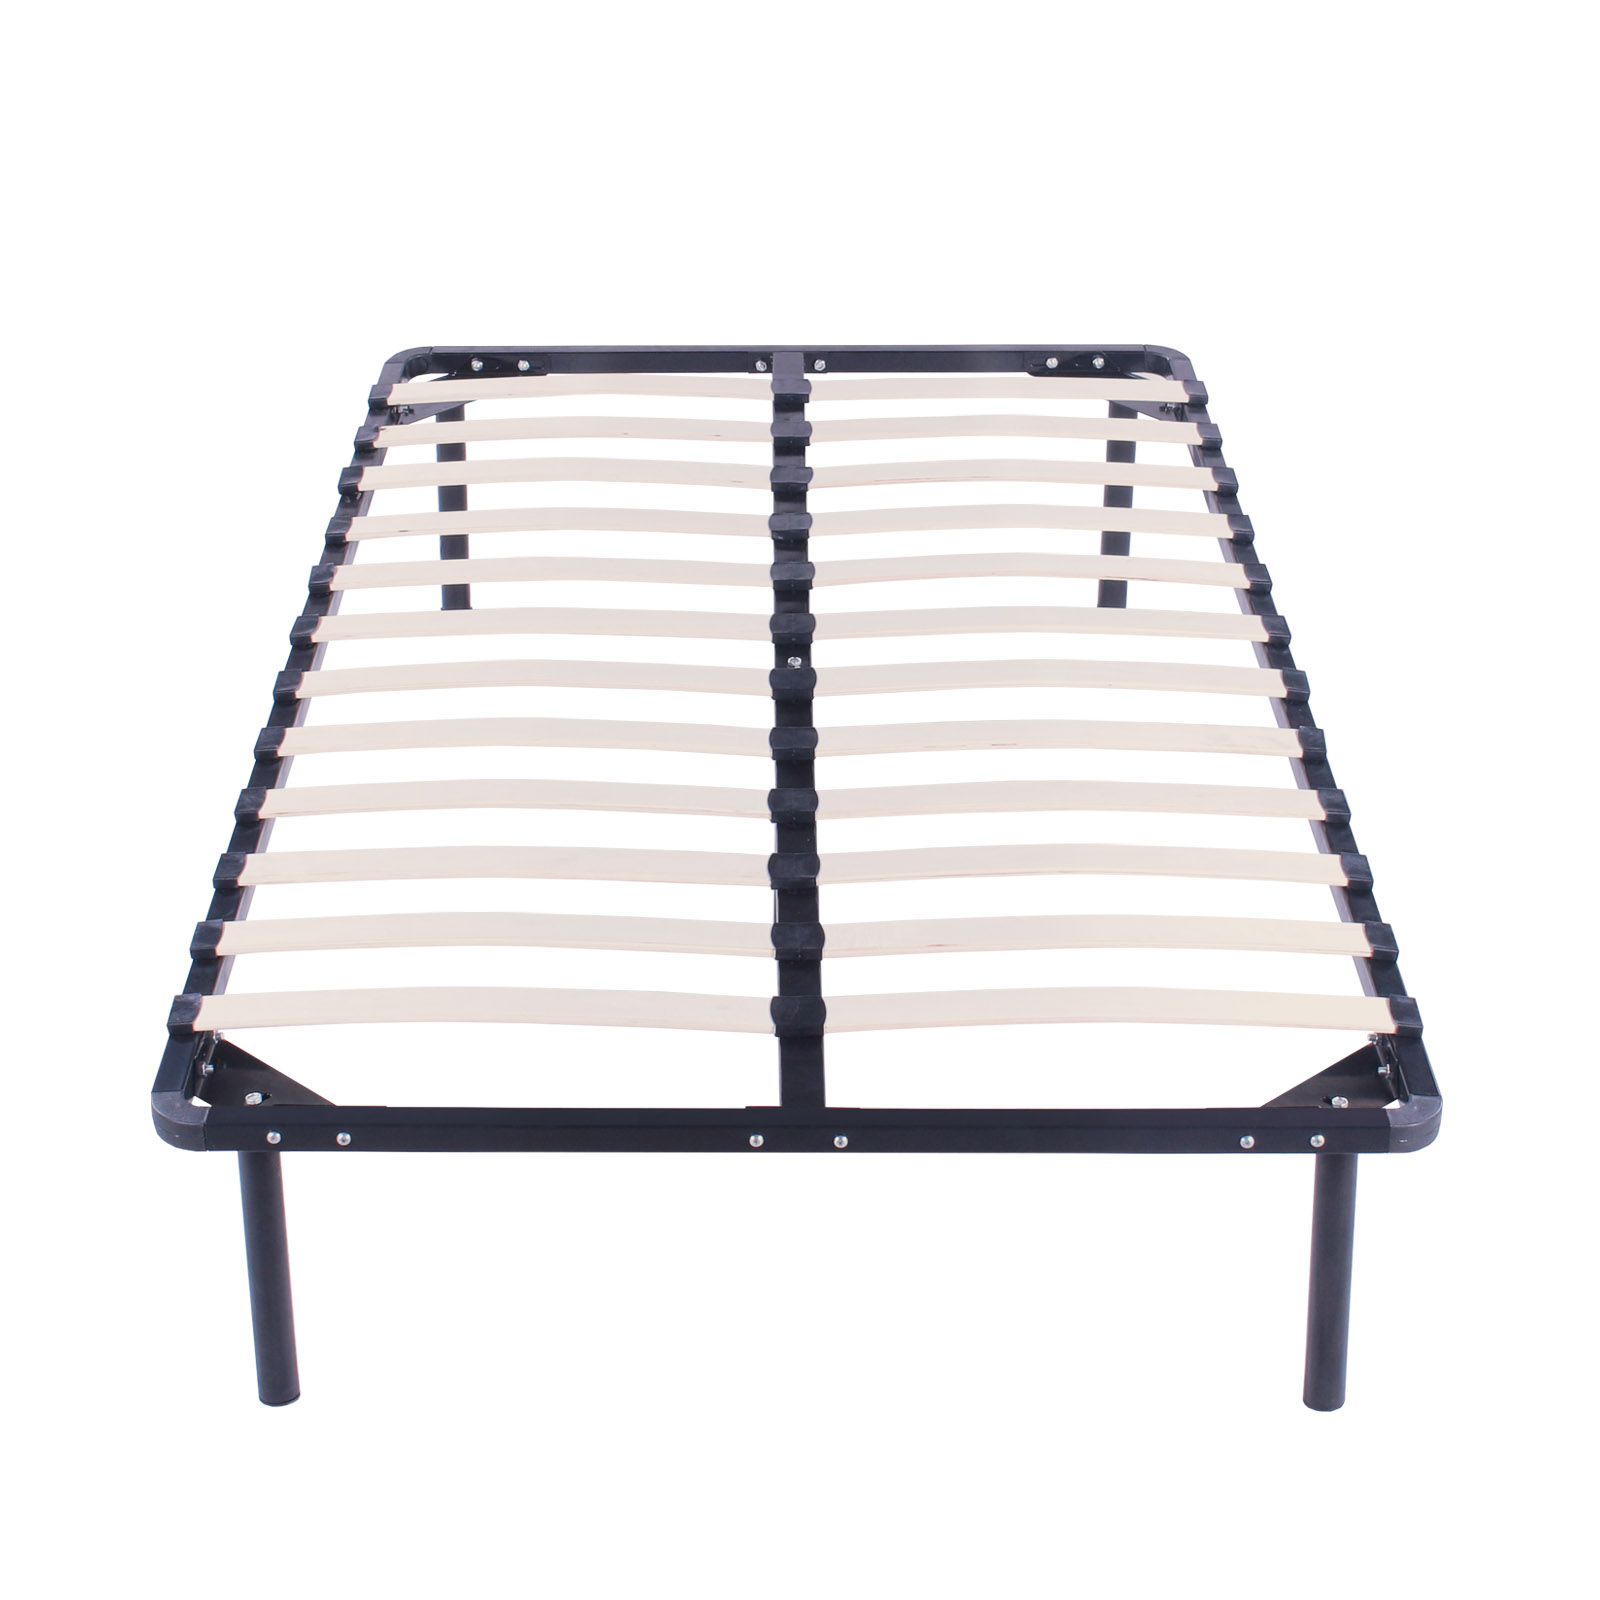 Twin size wood slats metal bed frame platform bedroom for Twin mattress and frame